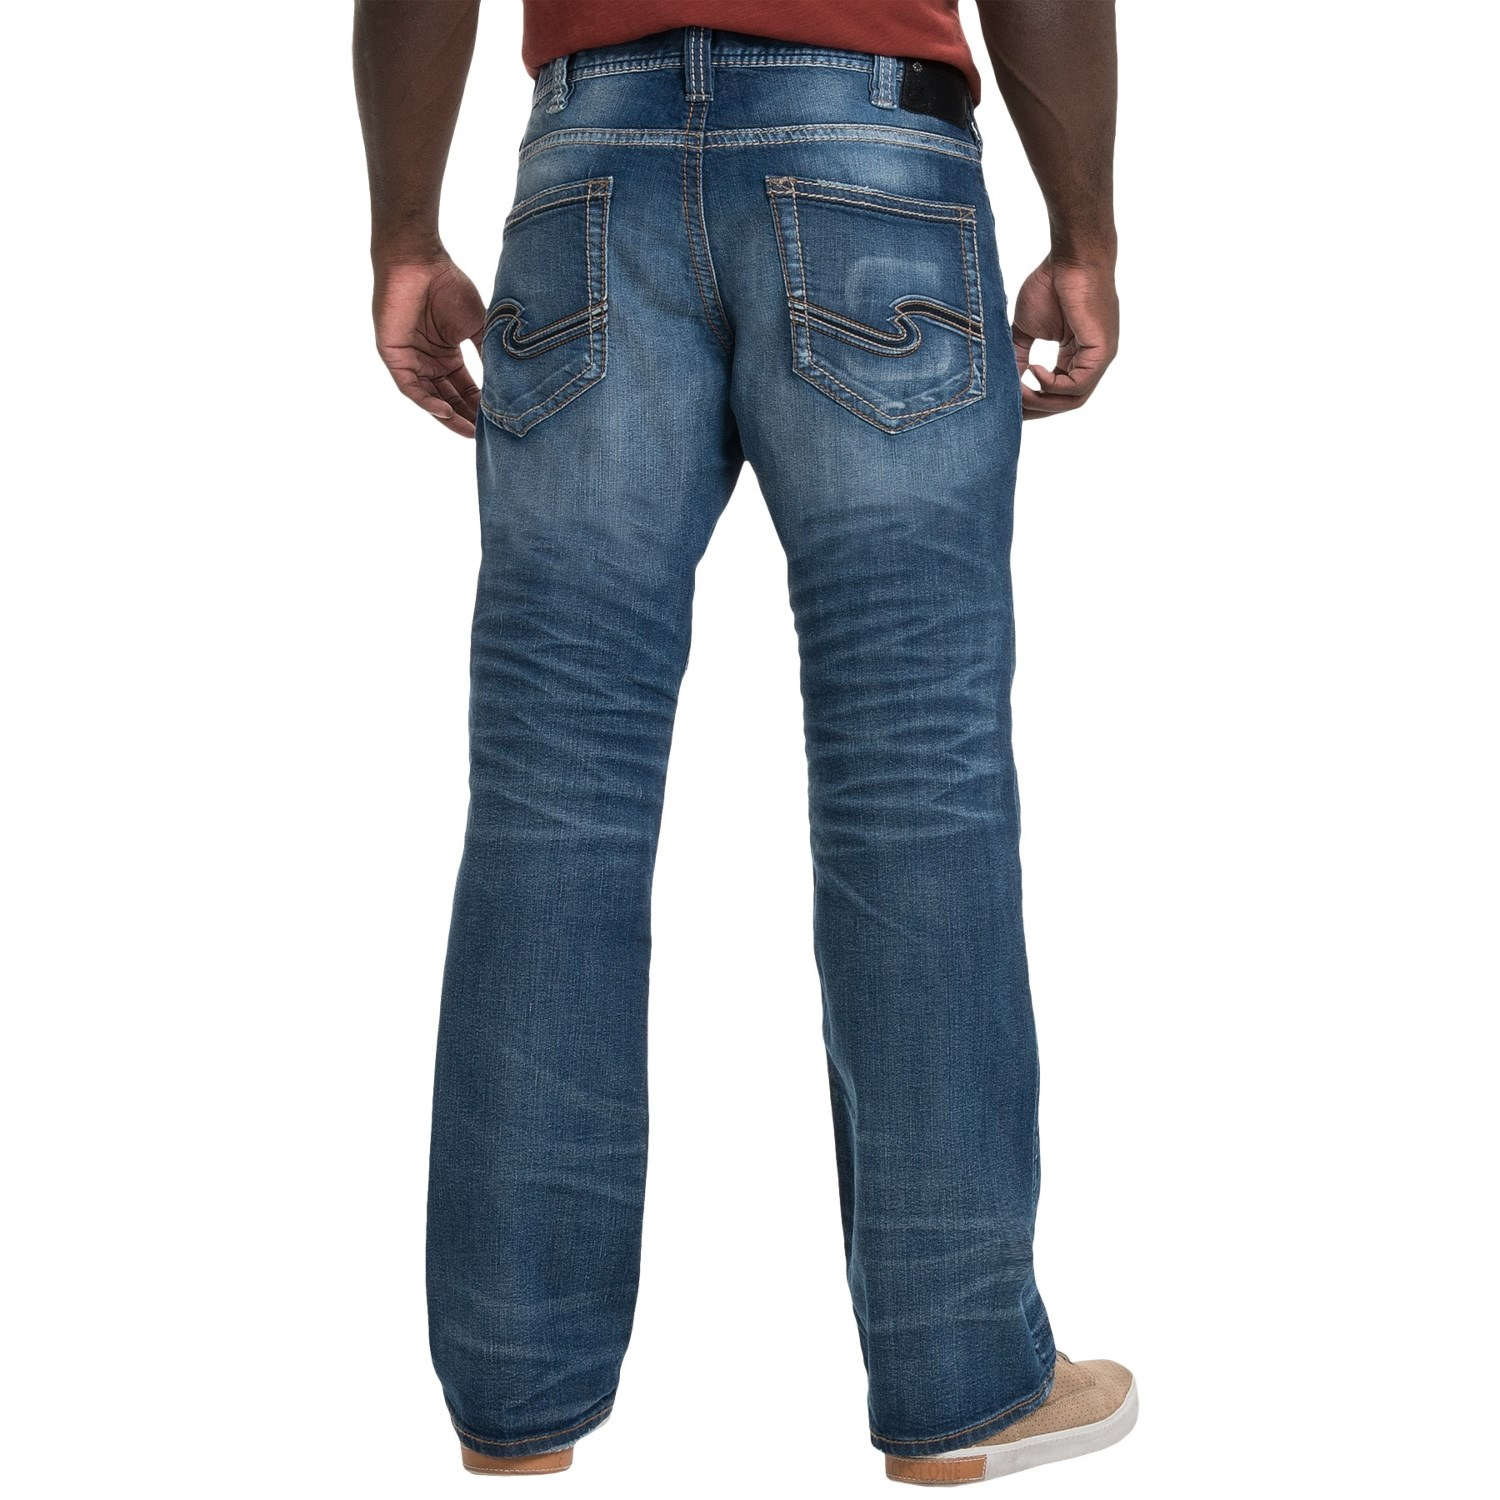 Mens Silver Jeans Clearance - Jeans Am